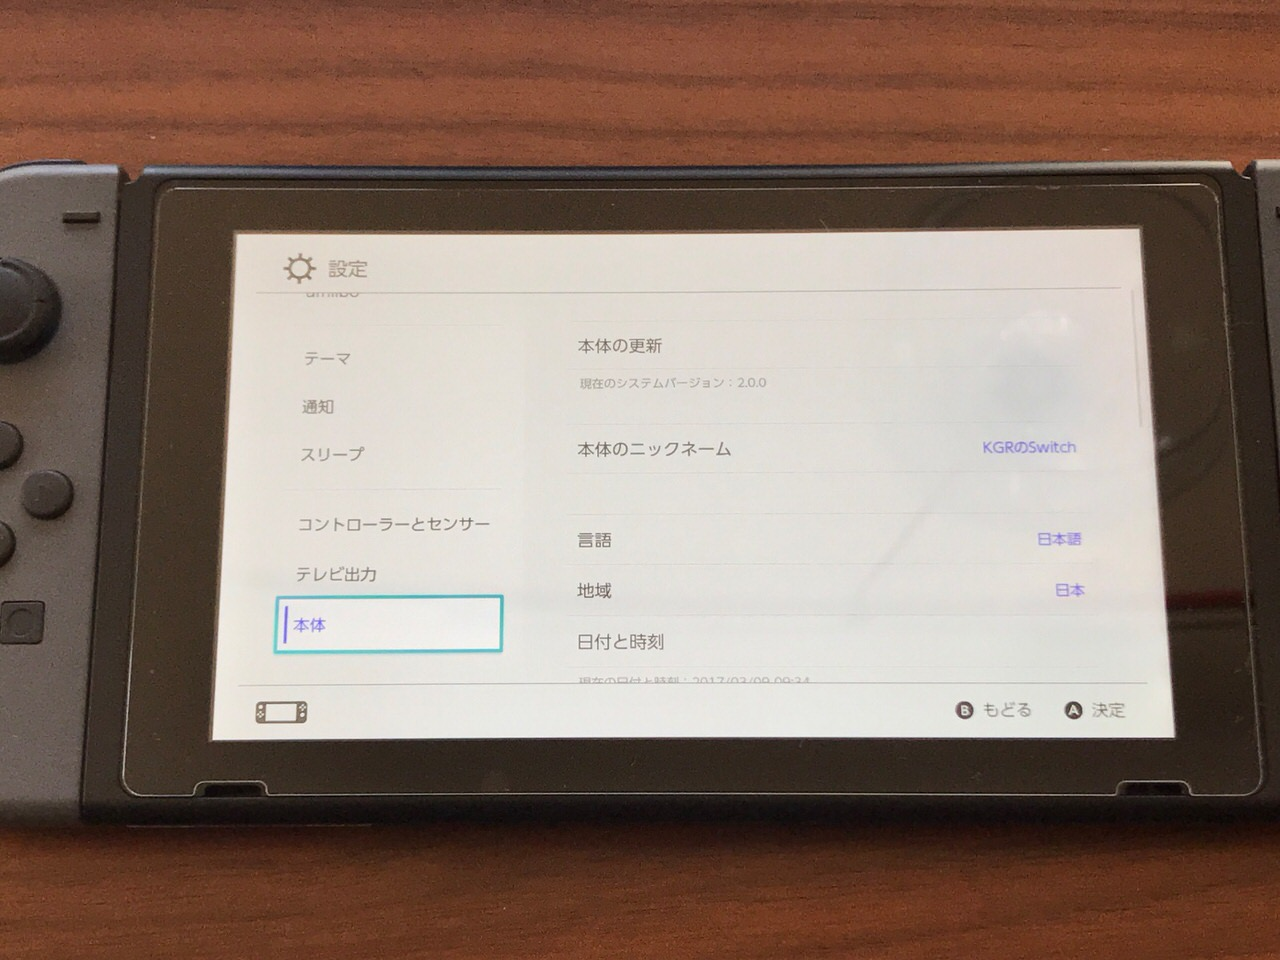 Nintendo switch freeBSD 93416